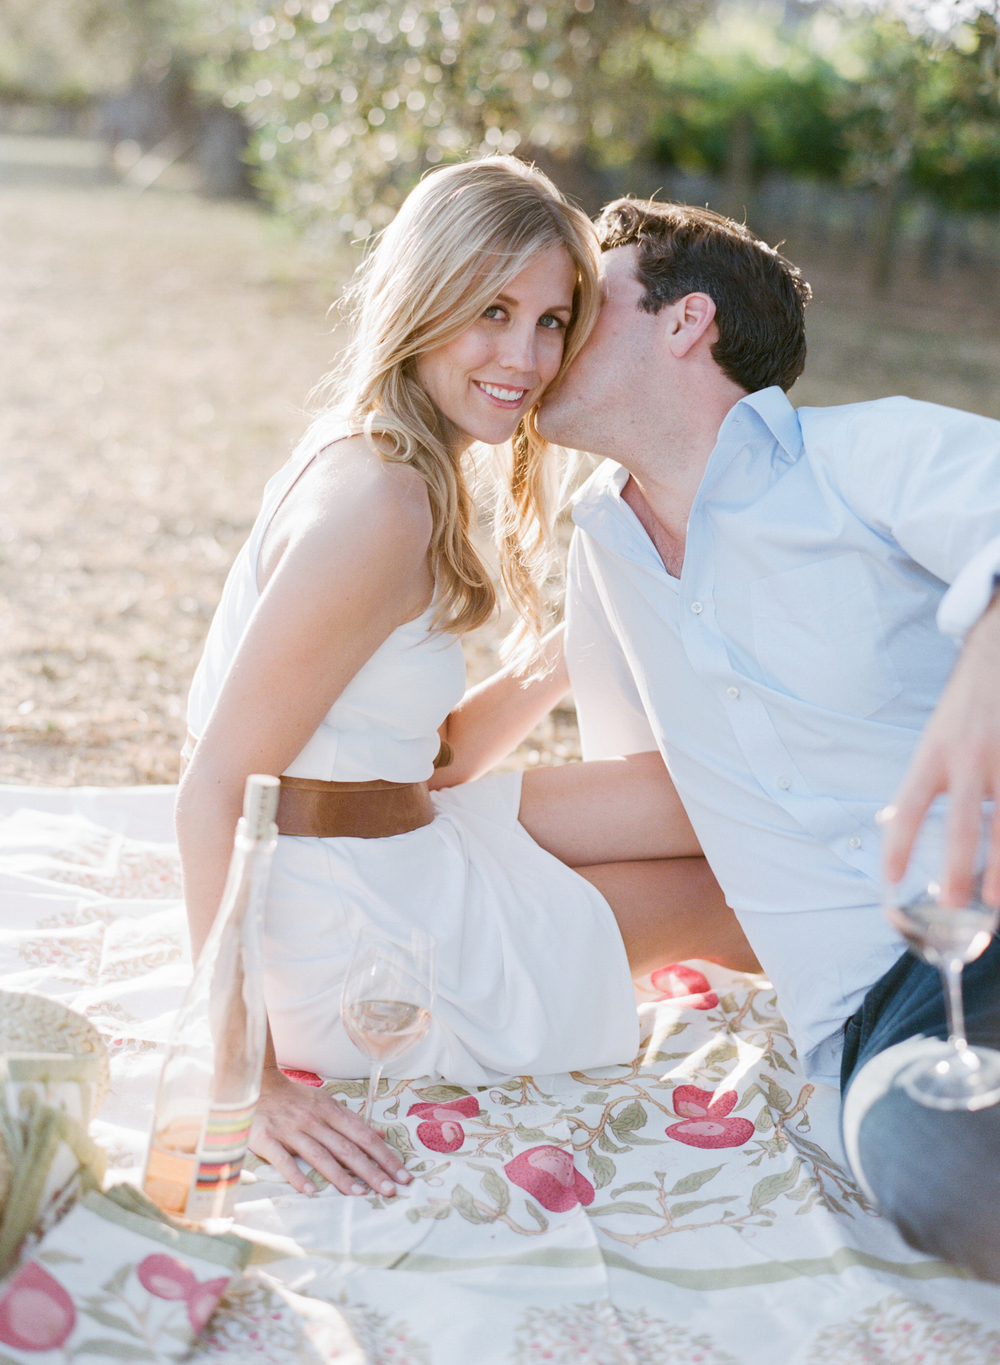 A groom-to-be steals a kiss with his fiancee as they picnic in a Napa Valley vineyard  during an engagement session with Sylvie Gil.